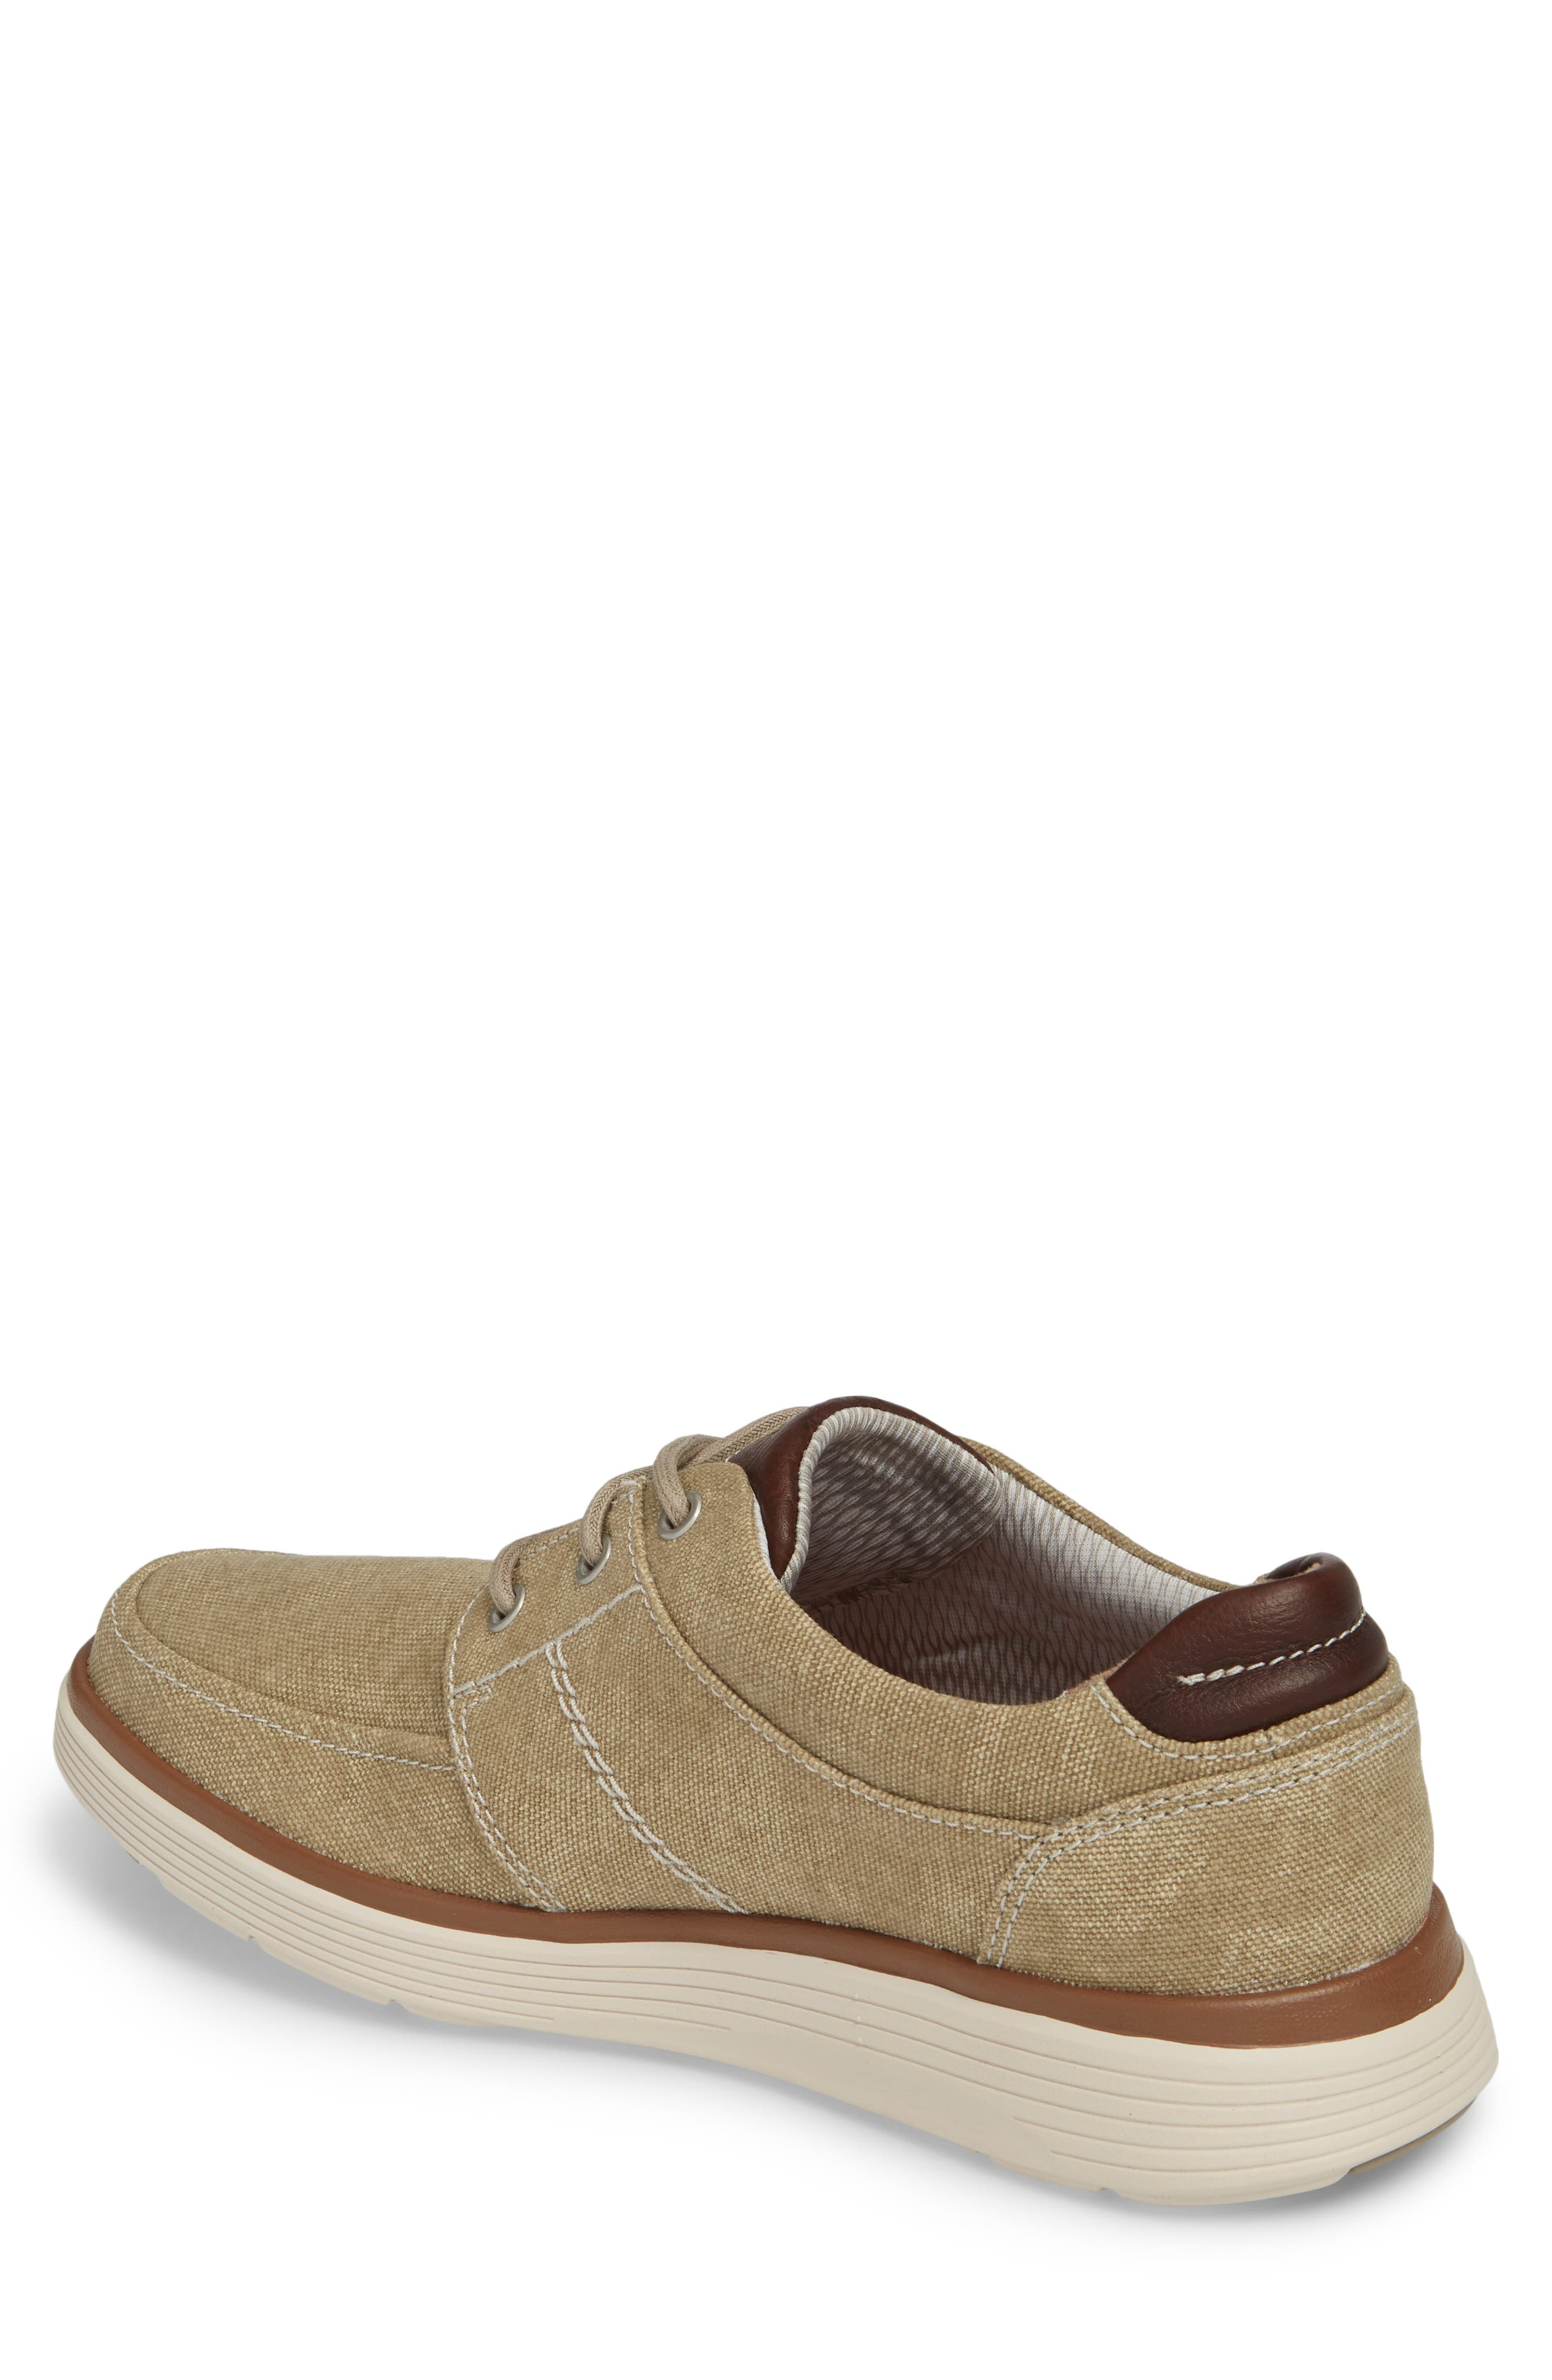 Clarks<sup>®</sup> Unabode Form Sneaker,                             Alternate thumbnail 2, color,                             SAND FABRIC